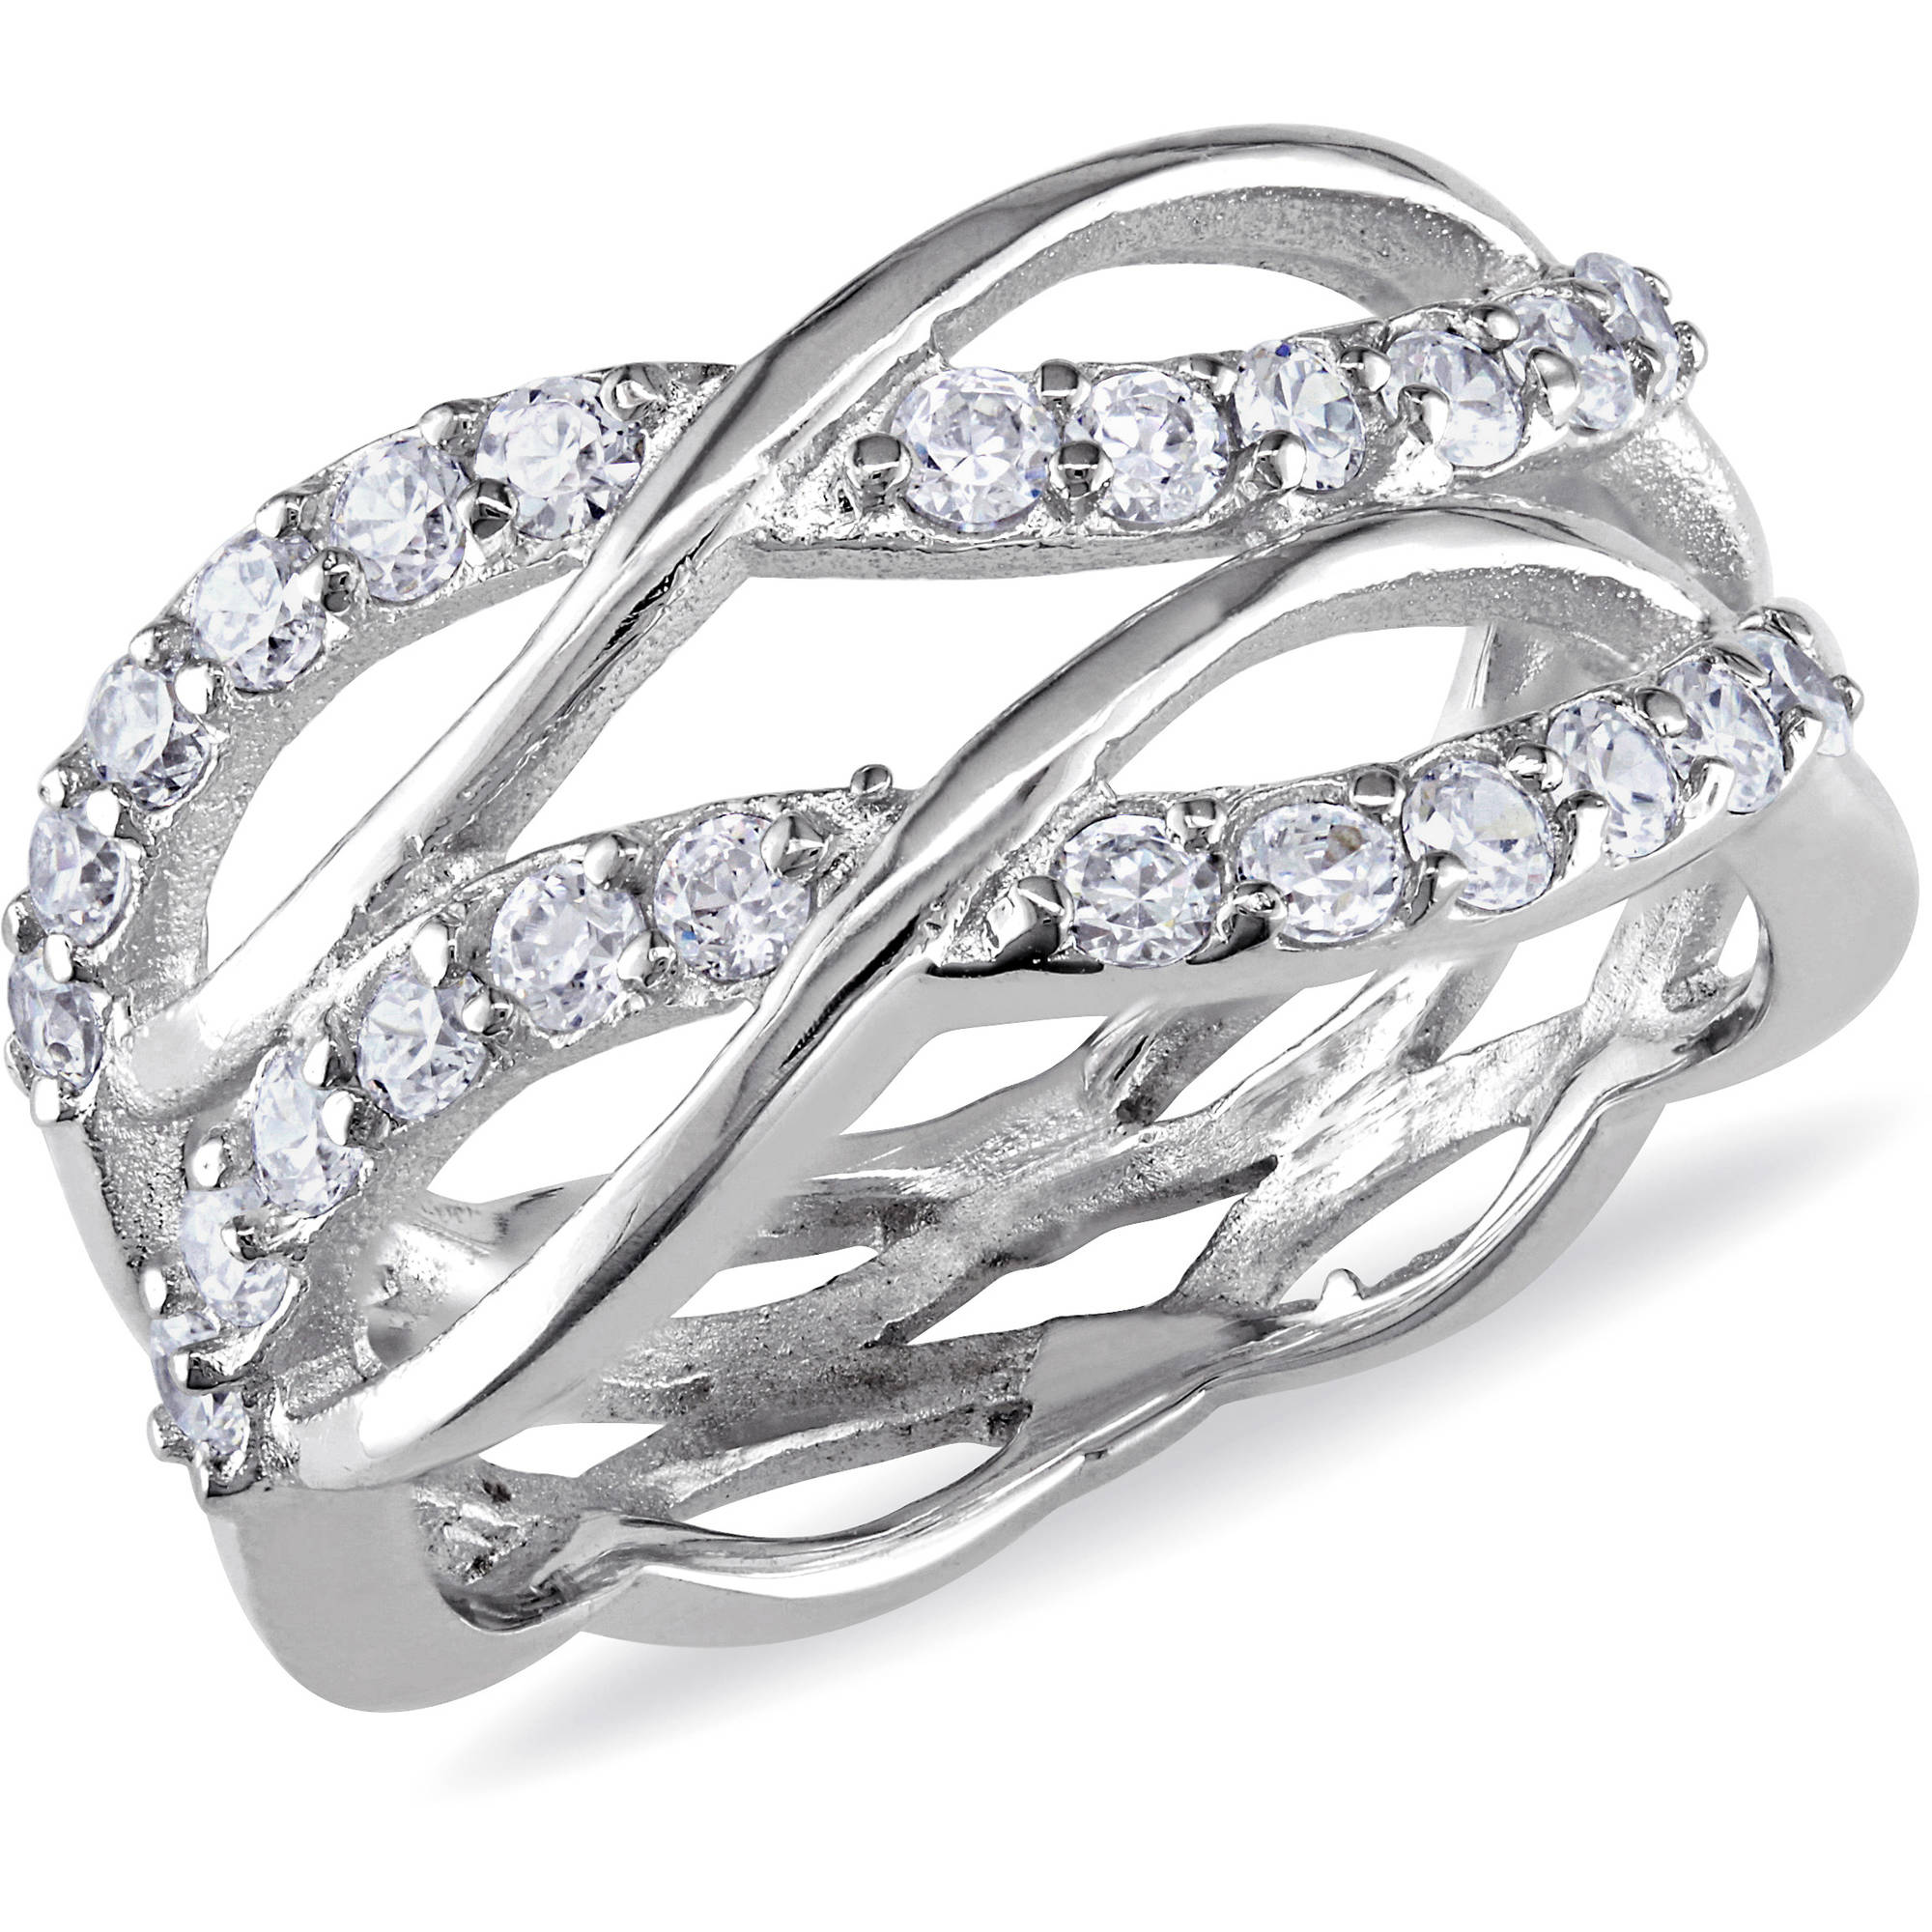 Miabella 1-1/5 Carat T.G.W. Cubic Zirconia Sterling Silver Double Infinity Ring